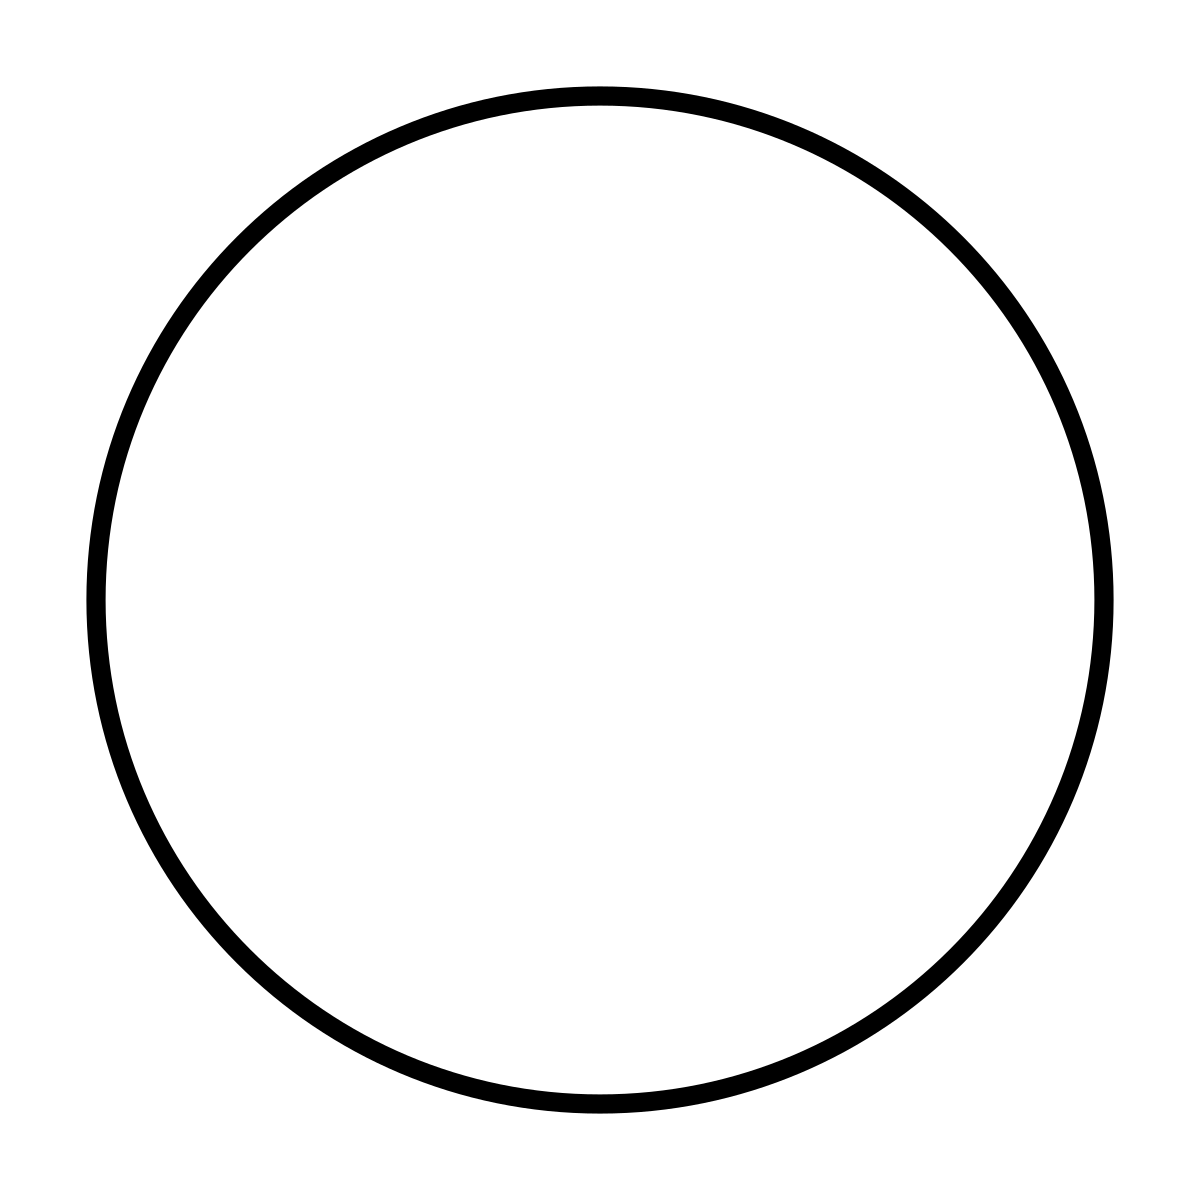 Png transparent circle. Simple english wikipedia the